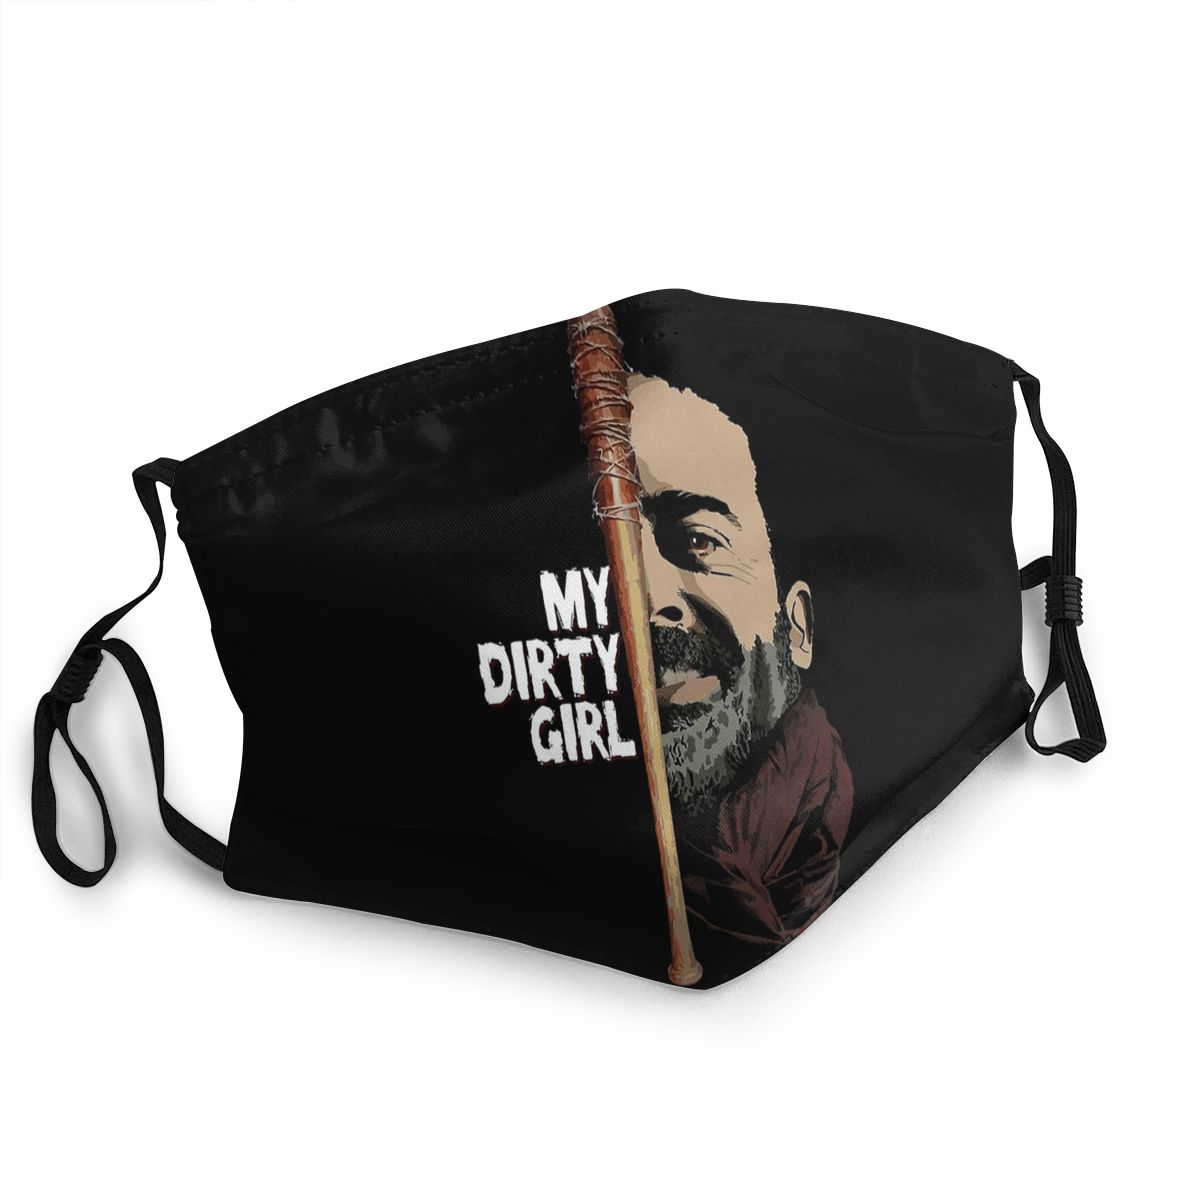 The Walking Dead Negan Lucille Unisex Non-Disposable Face Mask Anti Haze Dust Mask Protection Cover Respirator Mouth Muffle